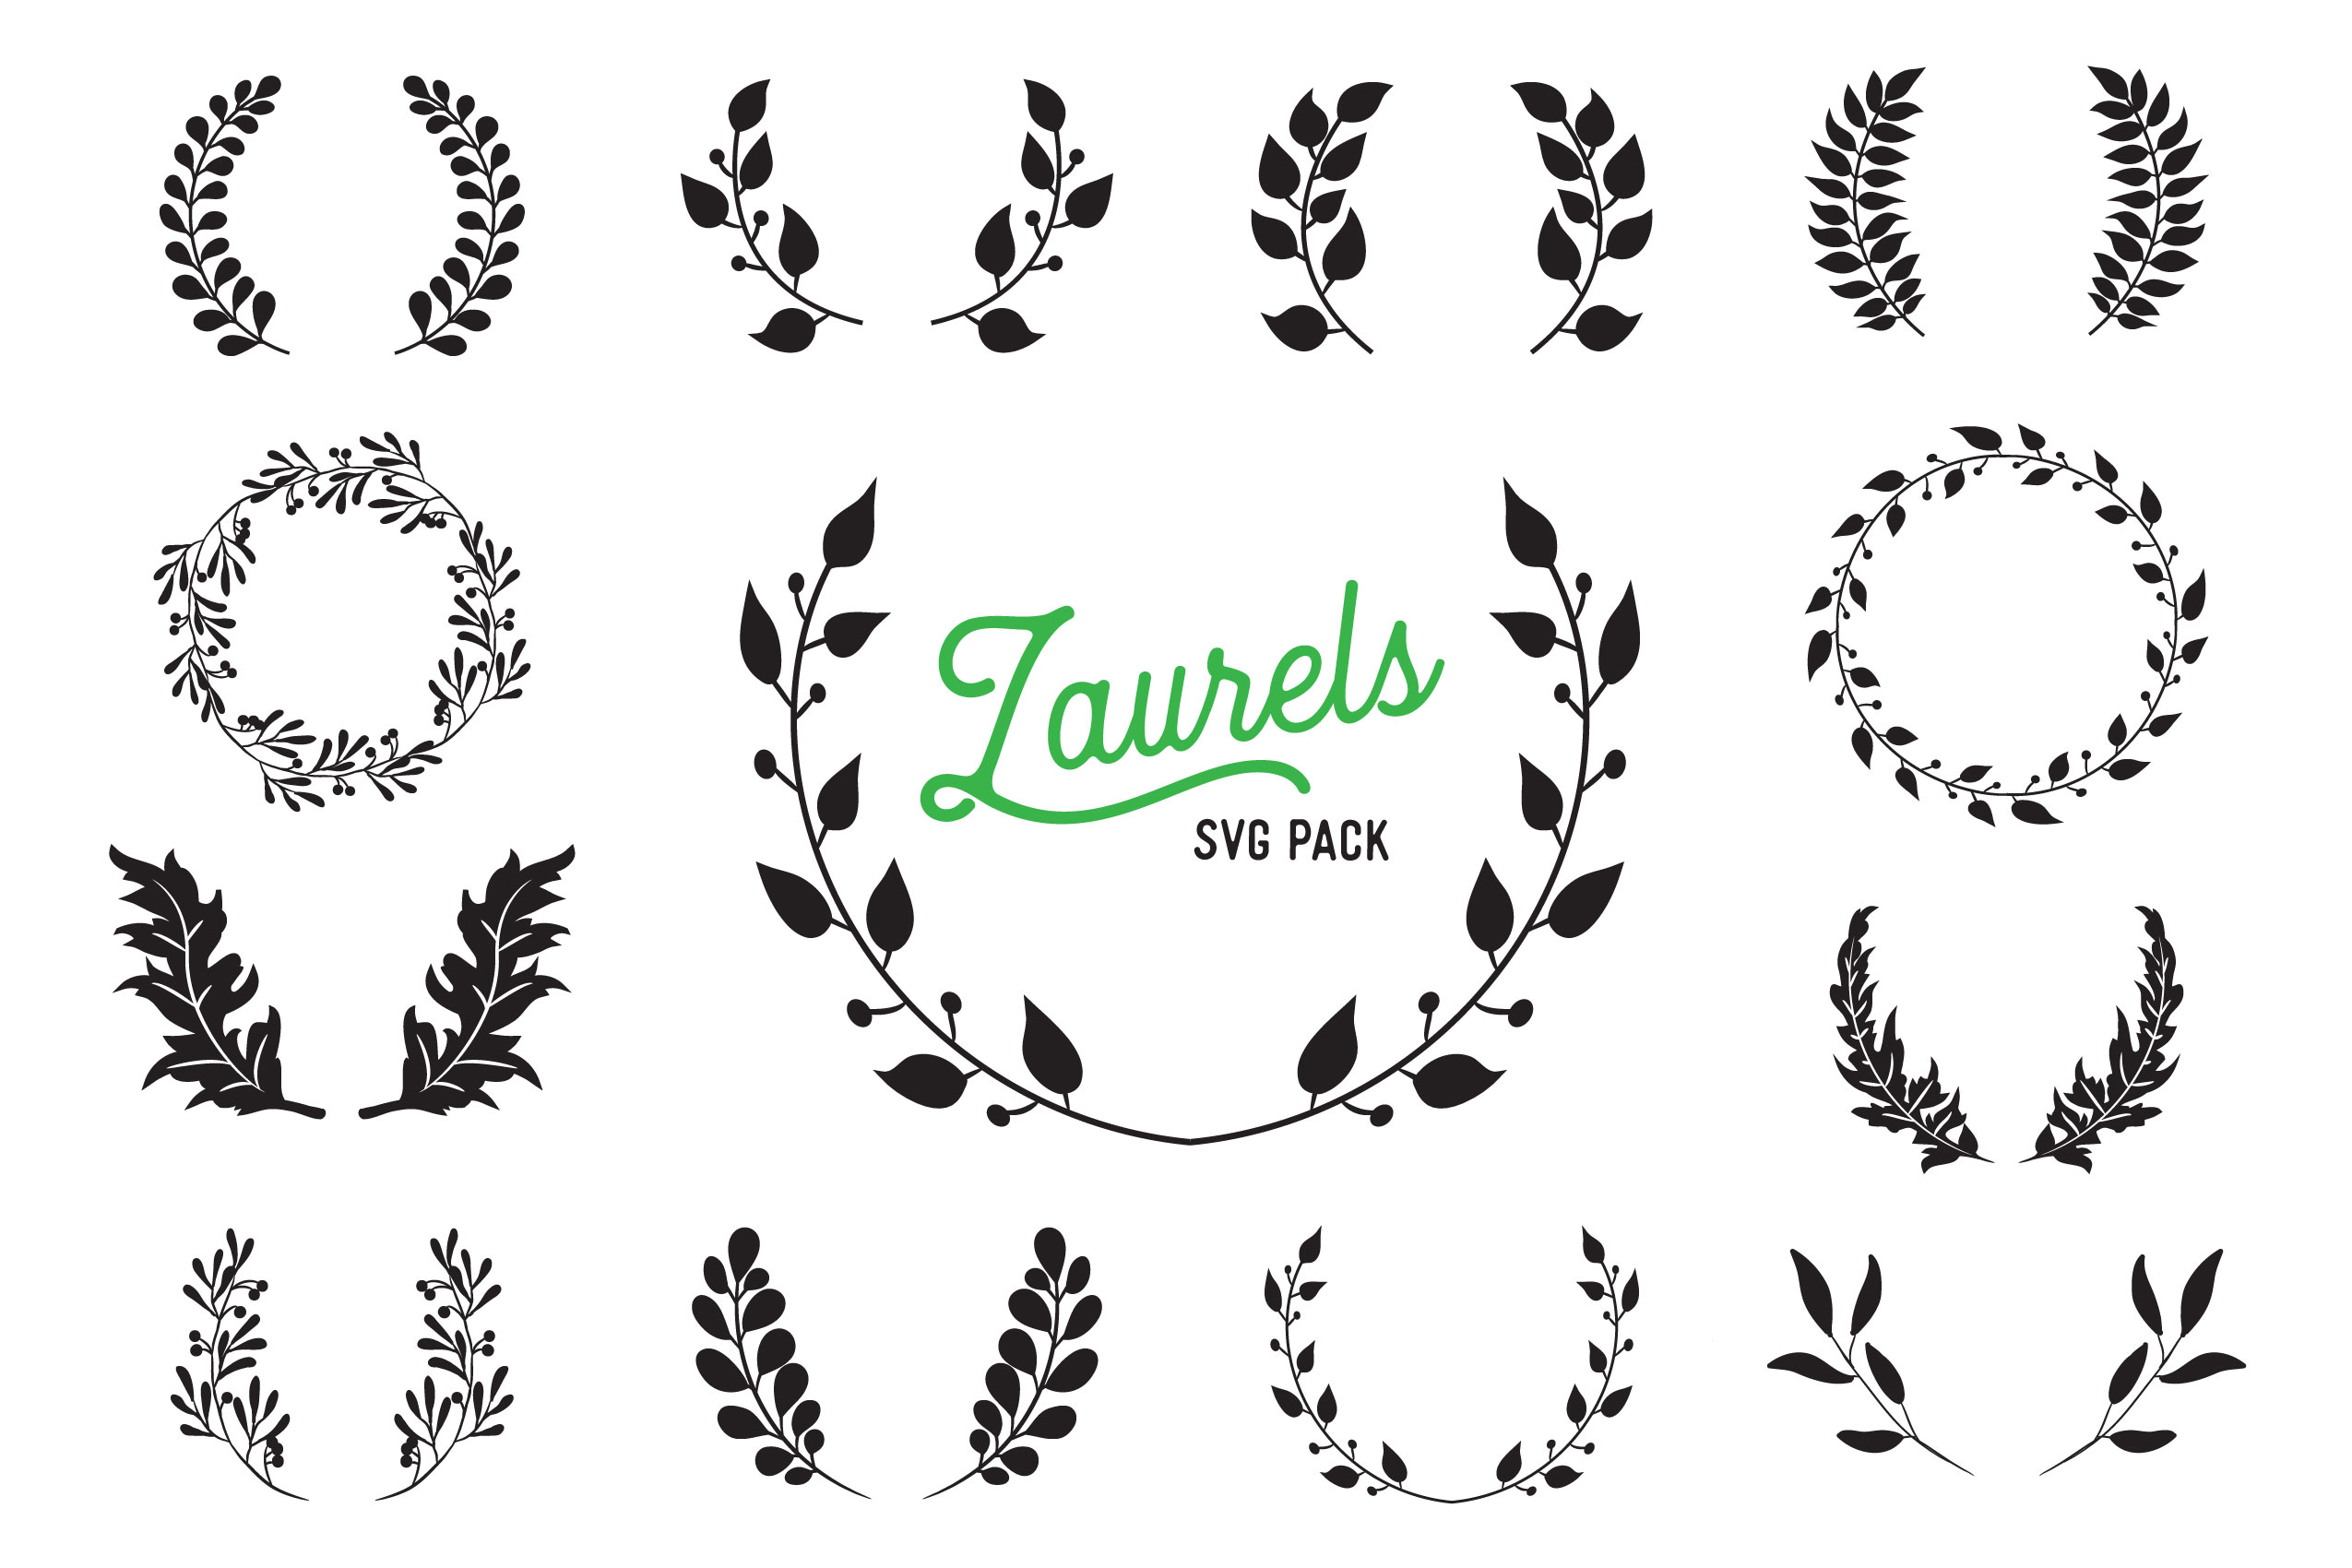 Download Free Leaf Laurel Vector Design Bundle Graphic By The Gradient Fox for Cricut Explore, Silhouette and other cutting machines.